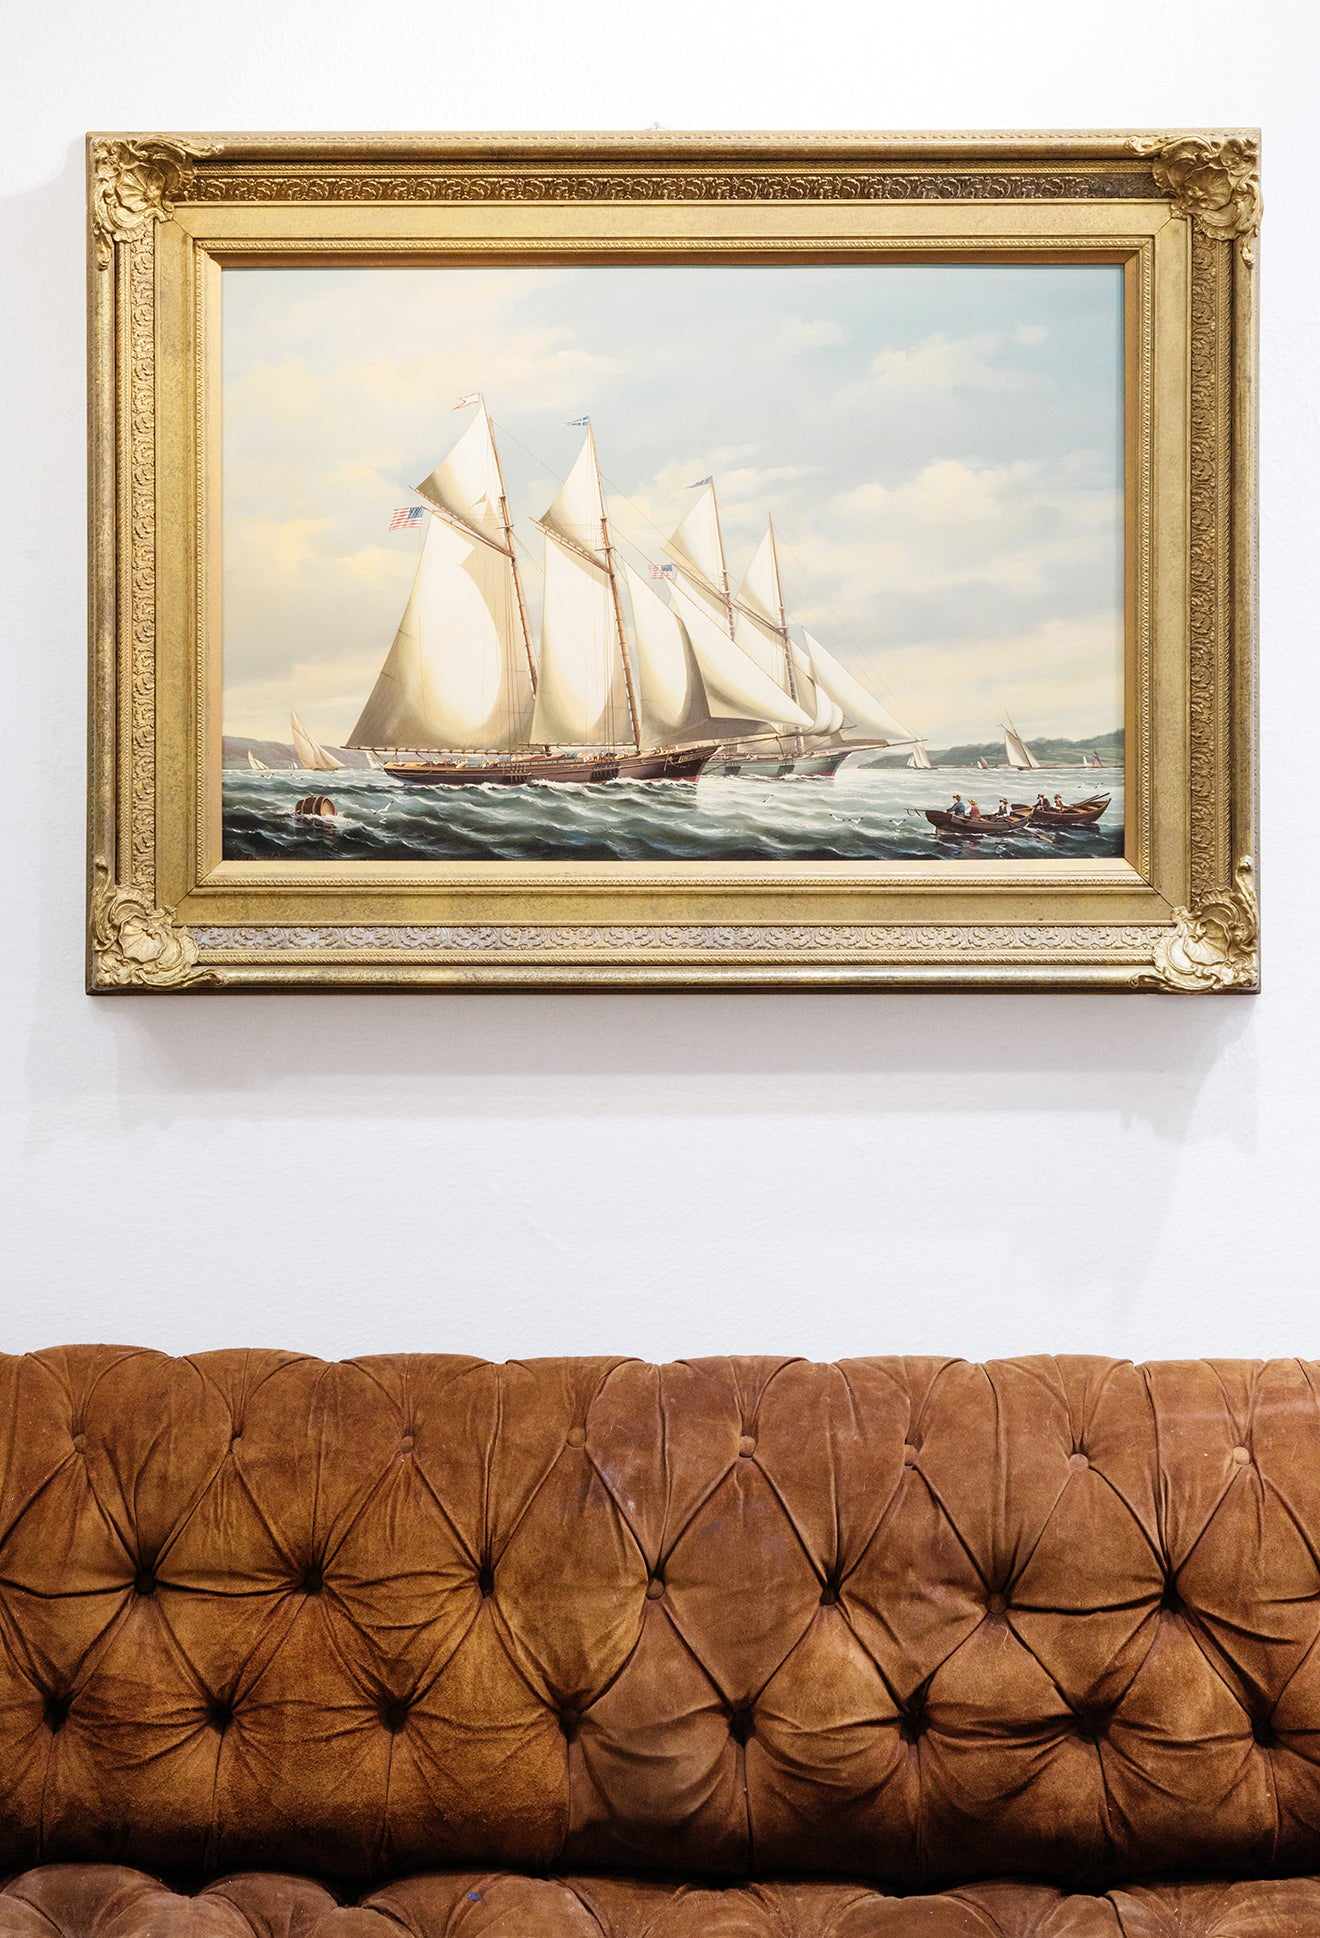 Sailing painting with gold frame next to tanned chesterfield sofa